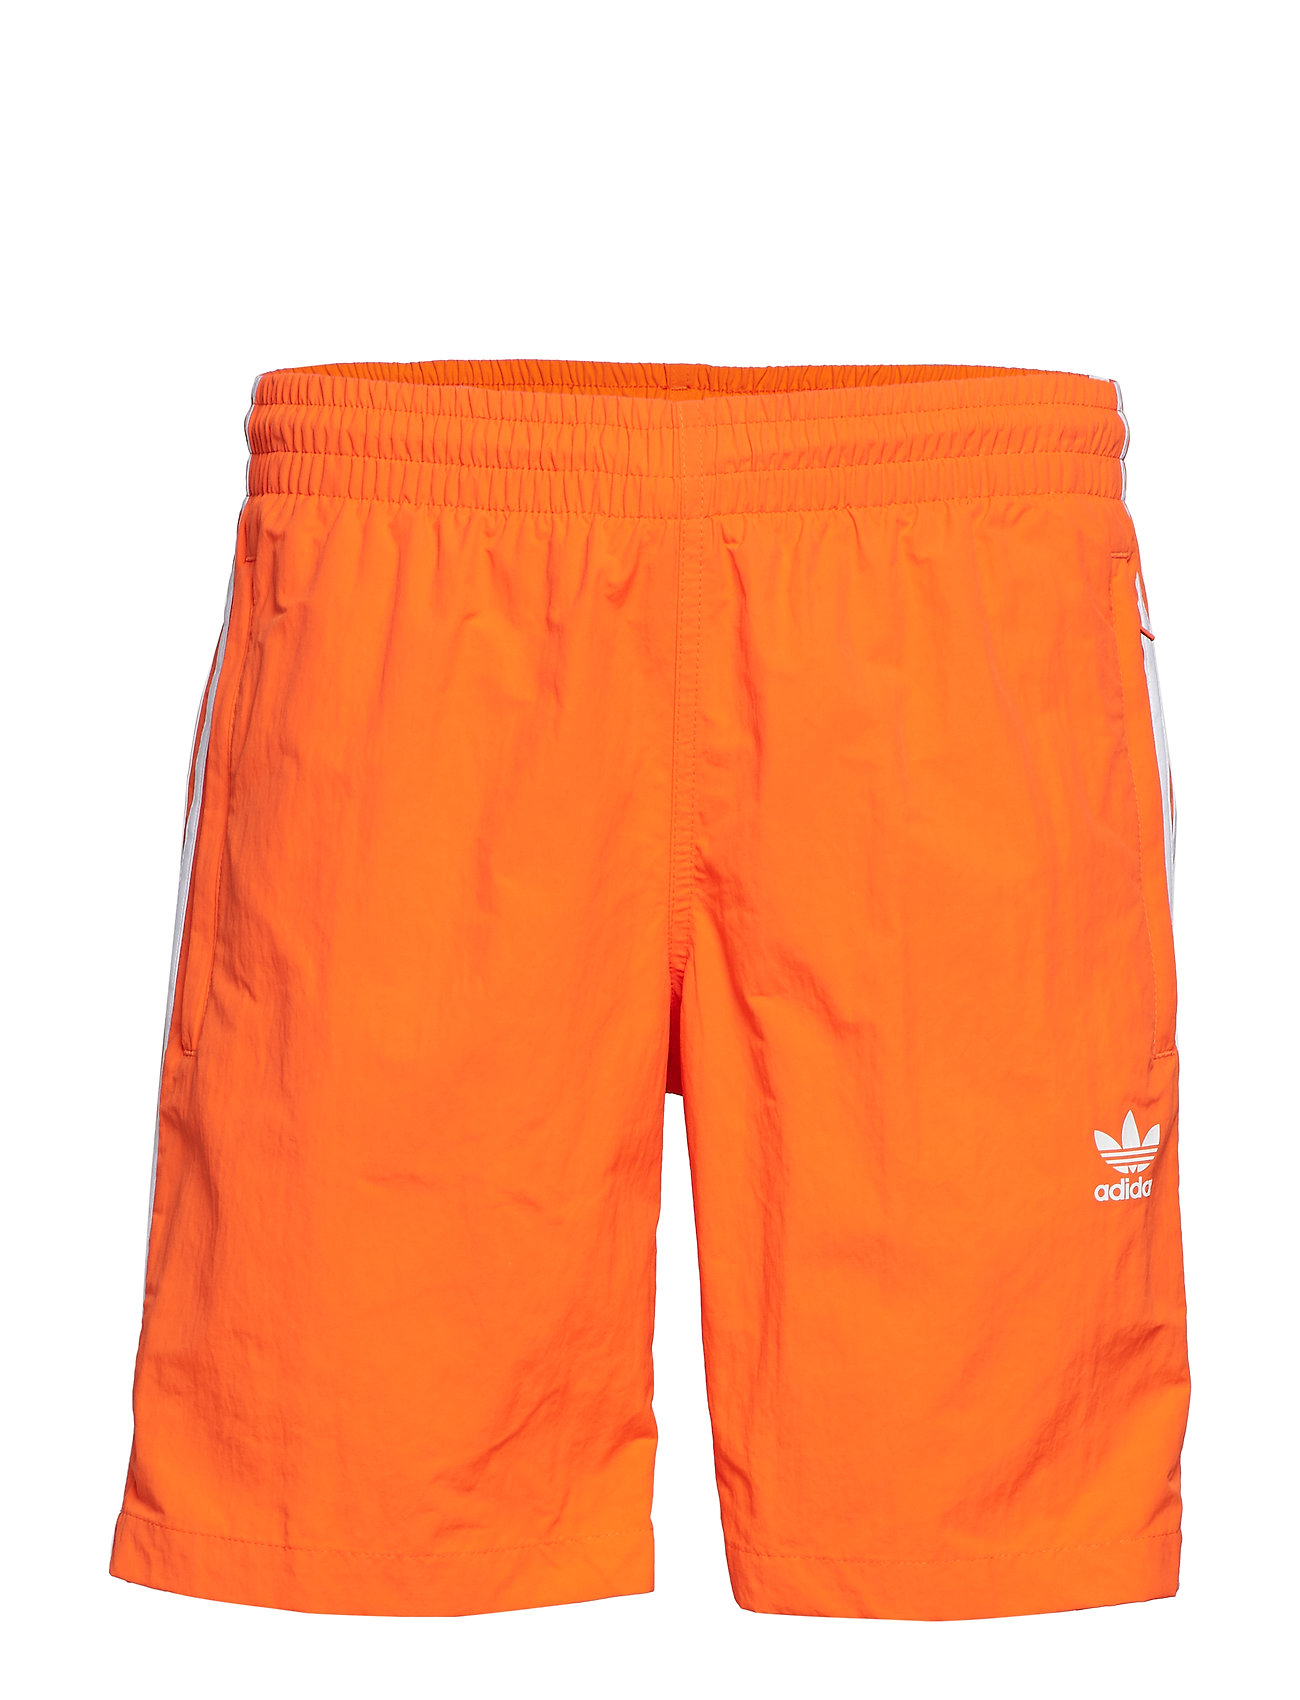 adidas Originals 3-STRIPES SWIM - ORANGE